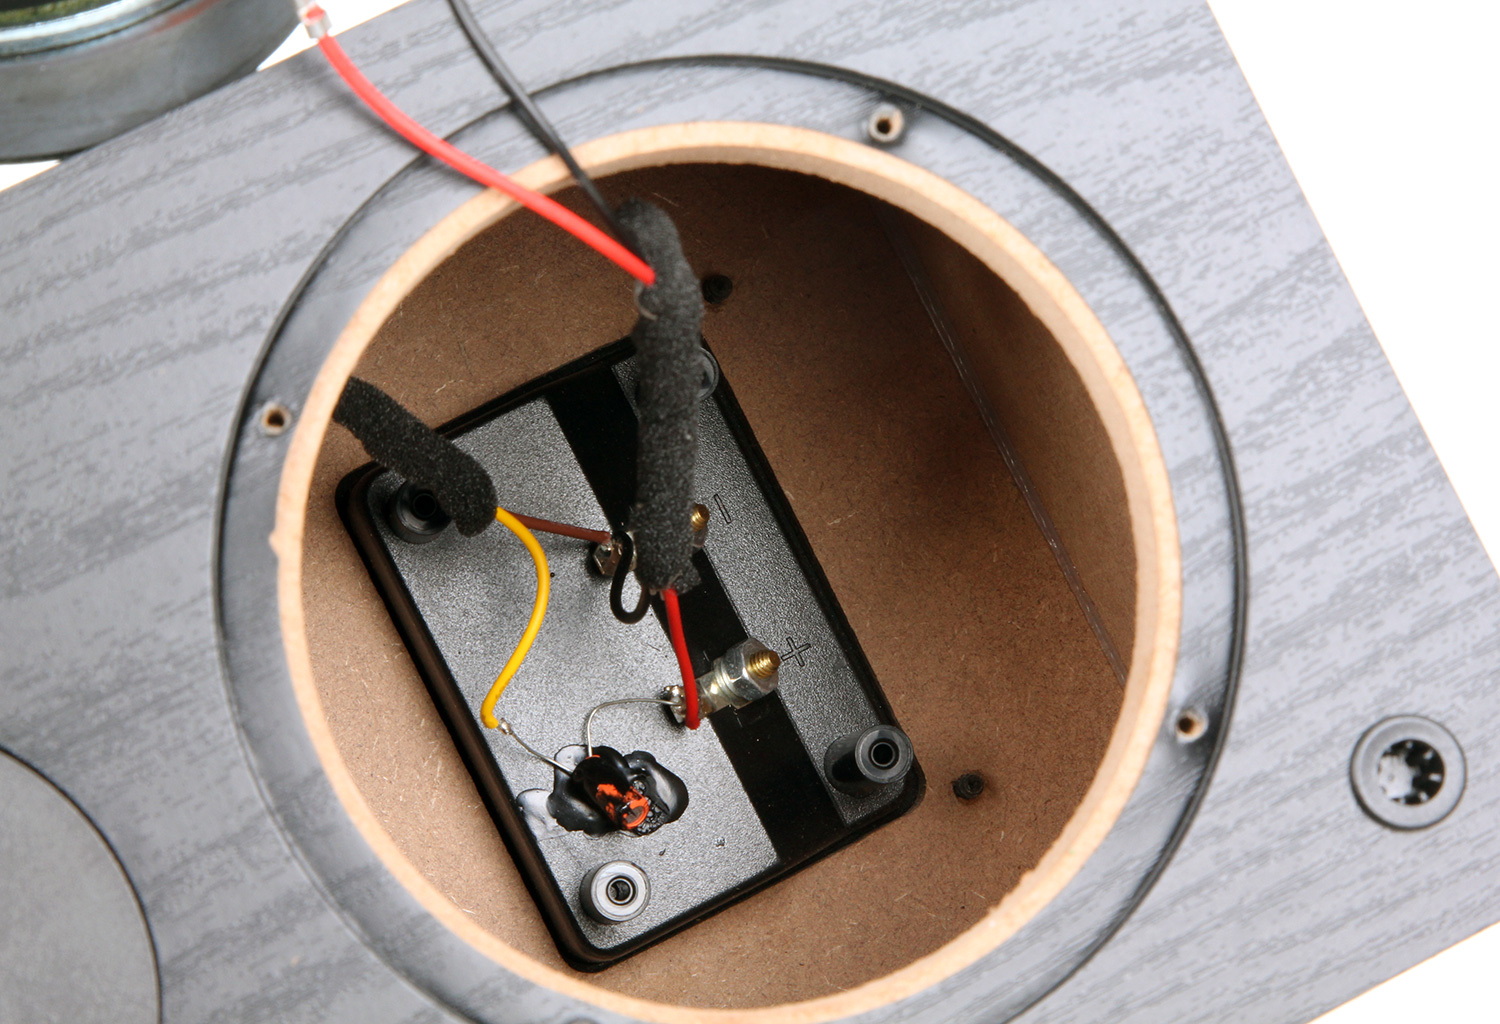 Budgetphile Budget Wiring The Reality Of Copper Clad Aluminum Wire Metal Woofer Has Decent Sized Magnet And A Clean Looking Stamped Steel Basket Curiously There Is No Sealing Gasket On Back Rim